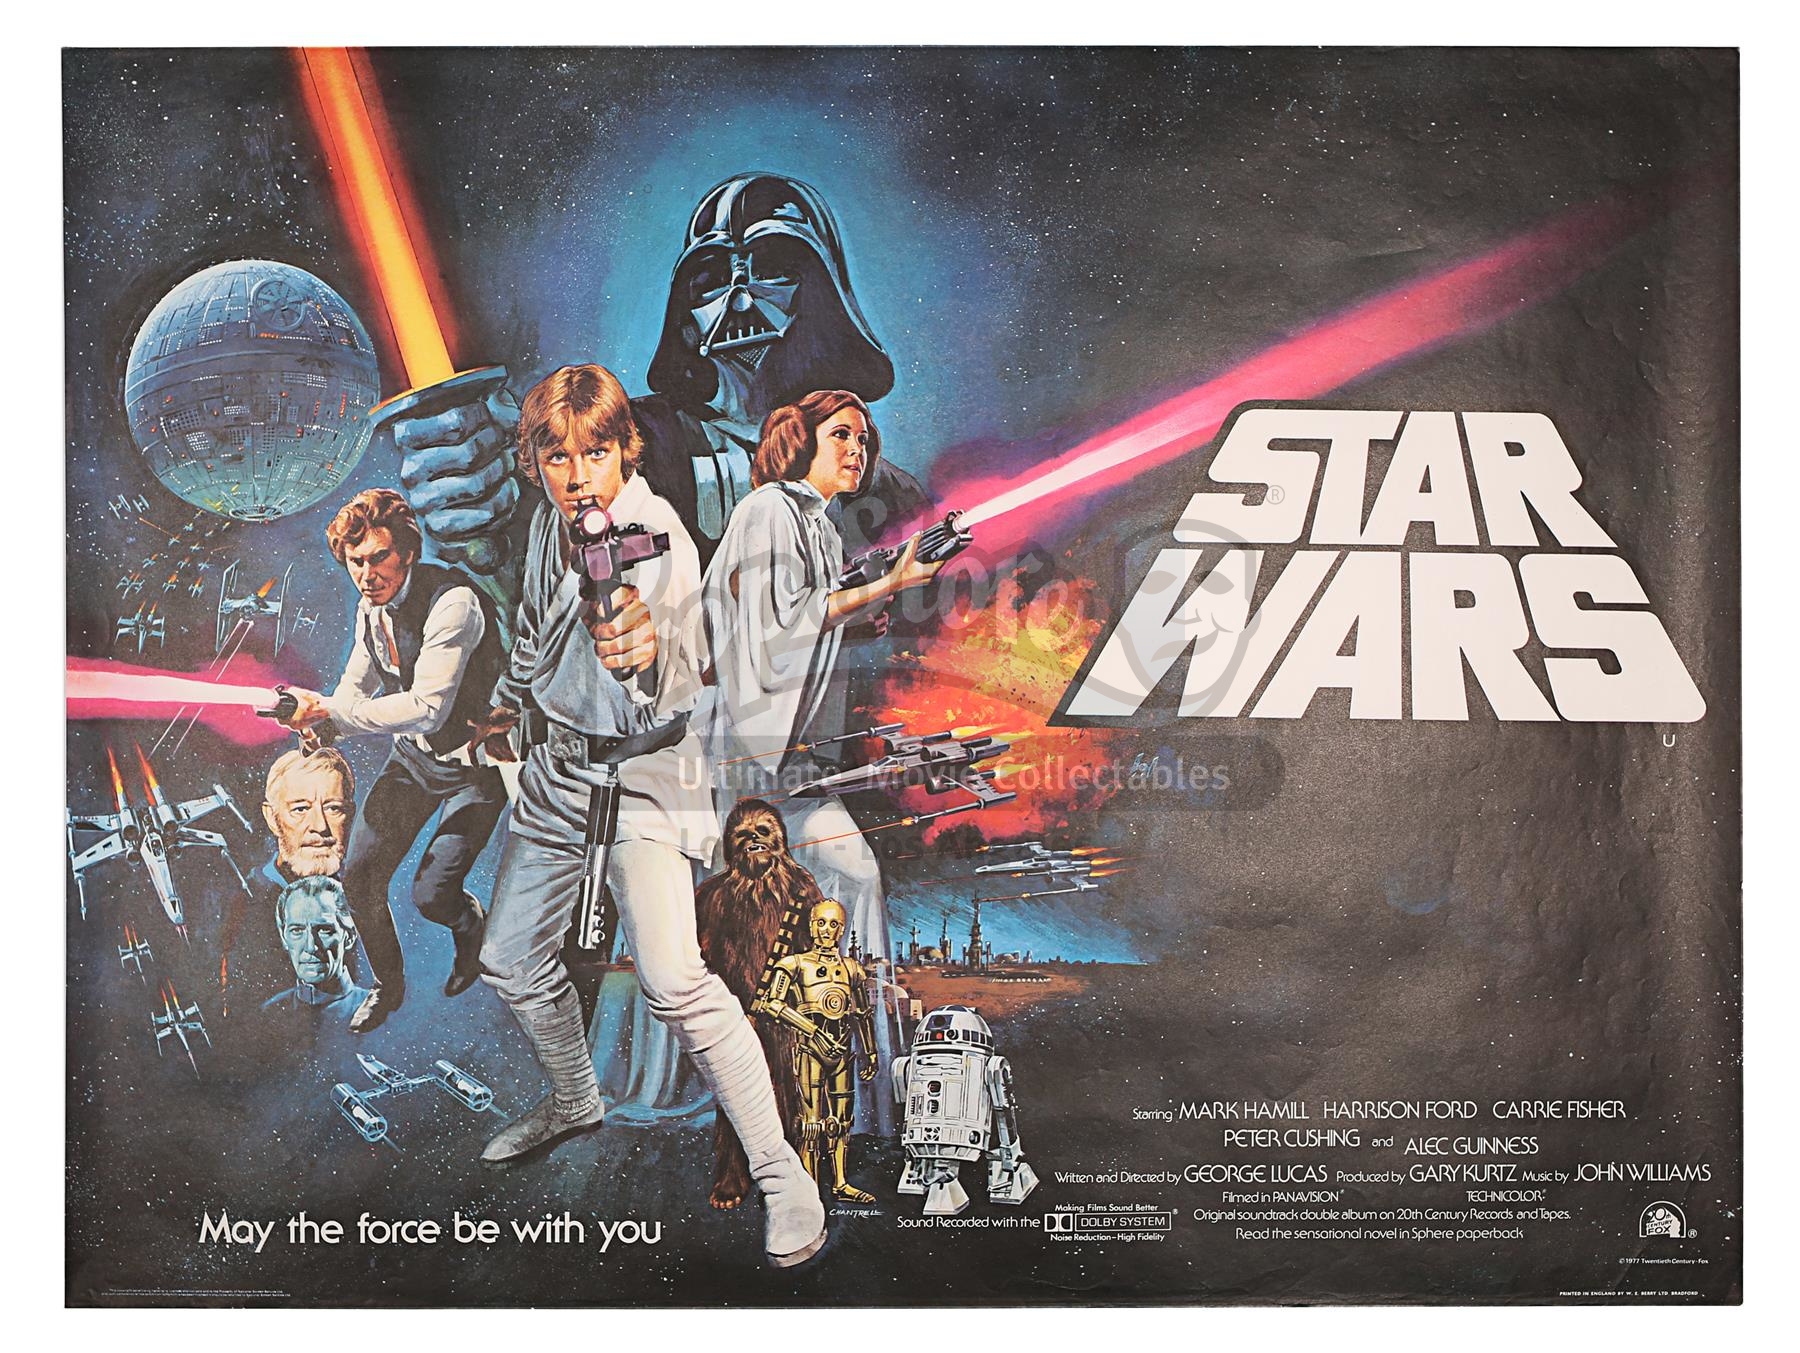 Star Wars: A New Hope (1977) 'Non-Oscar' UK Poster. Image: Prop Store